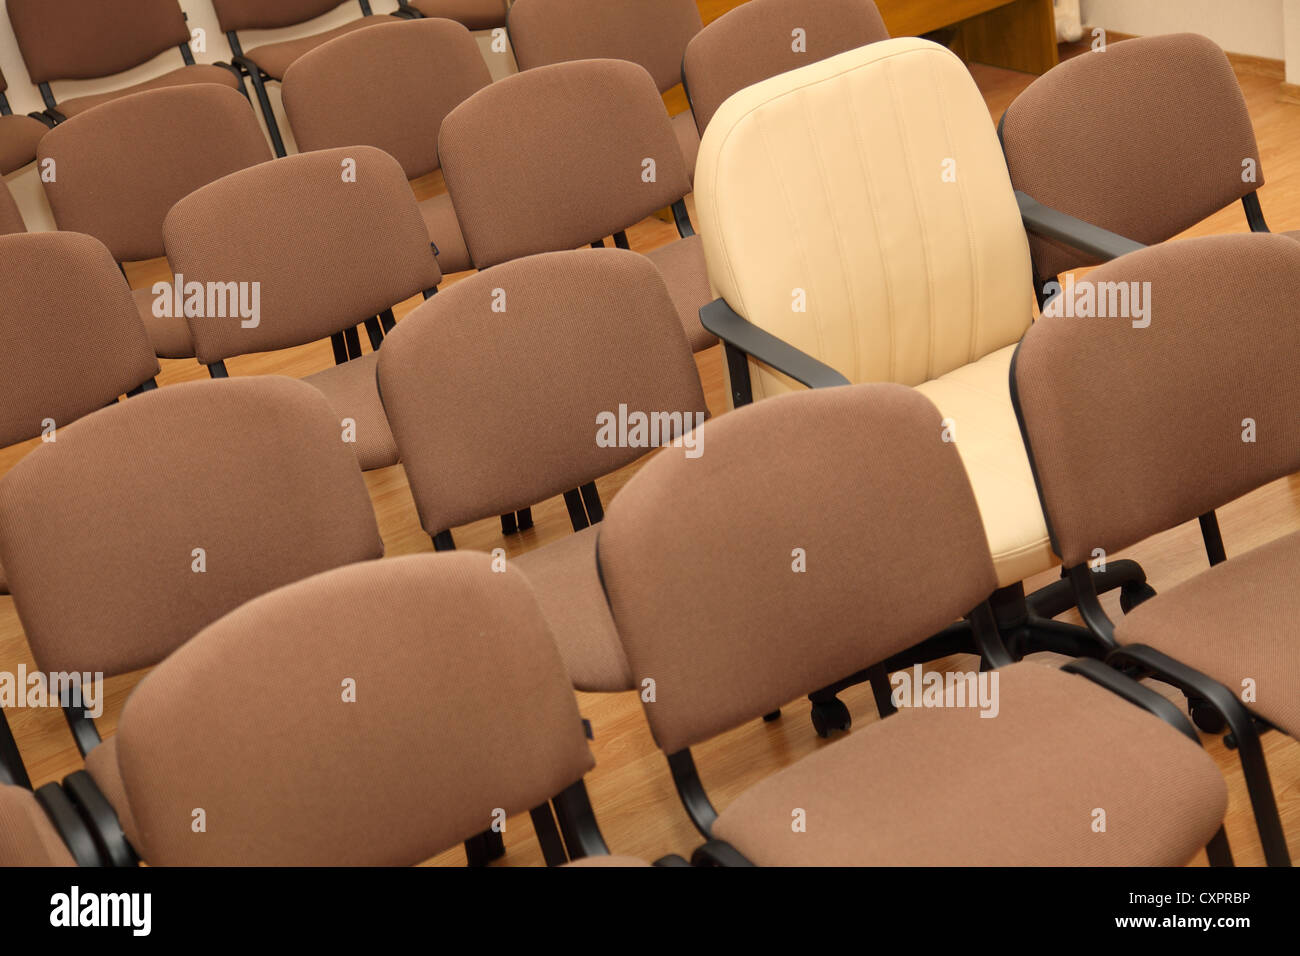 Manager chair stands out among the rows of ordinary office chairs - Stock Image